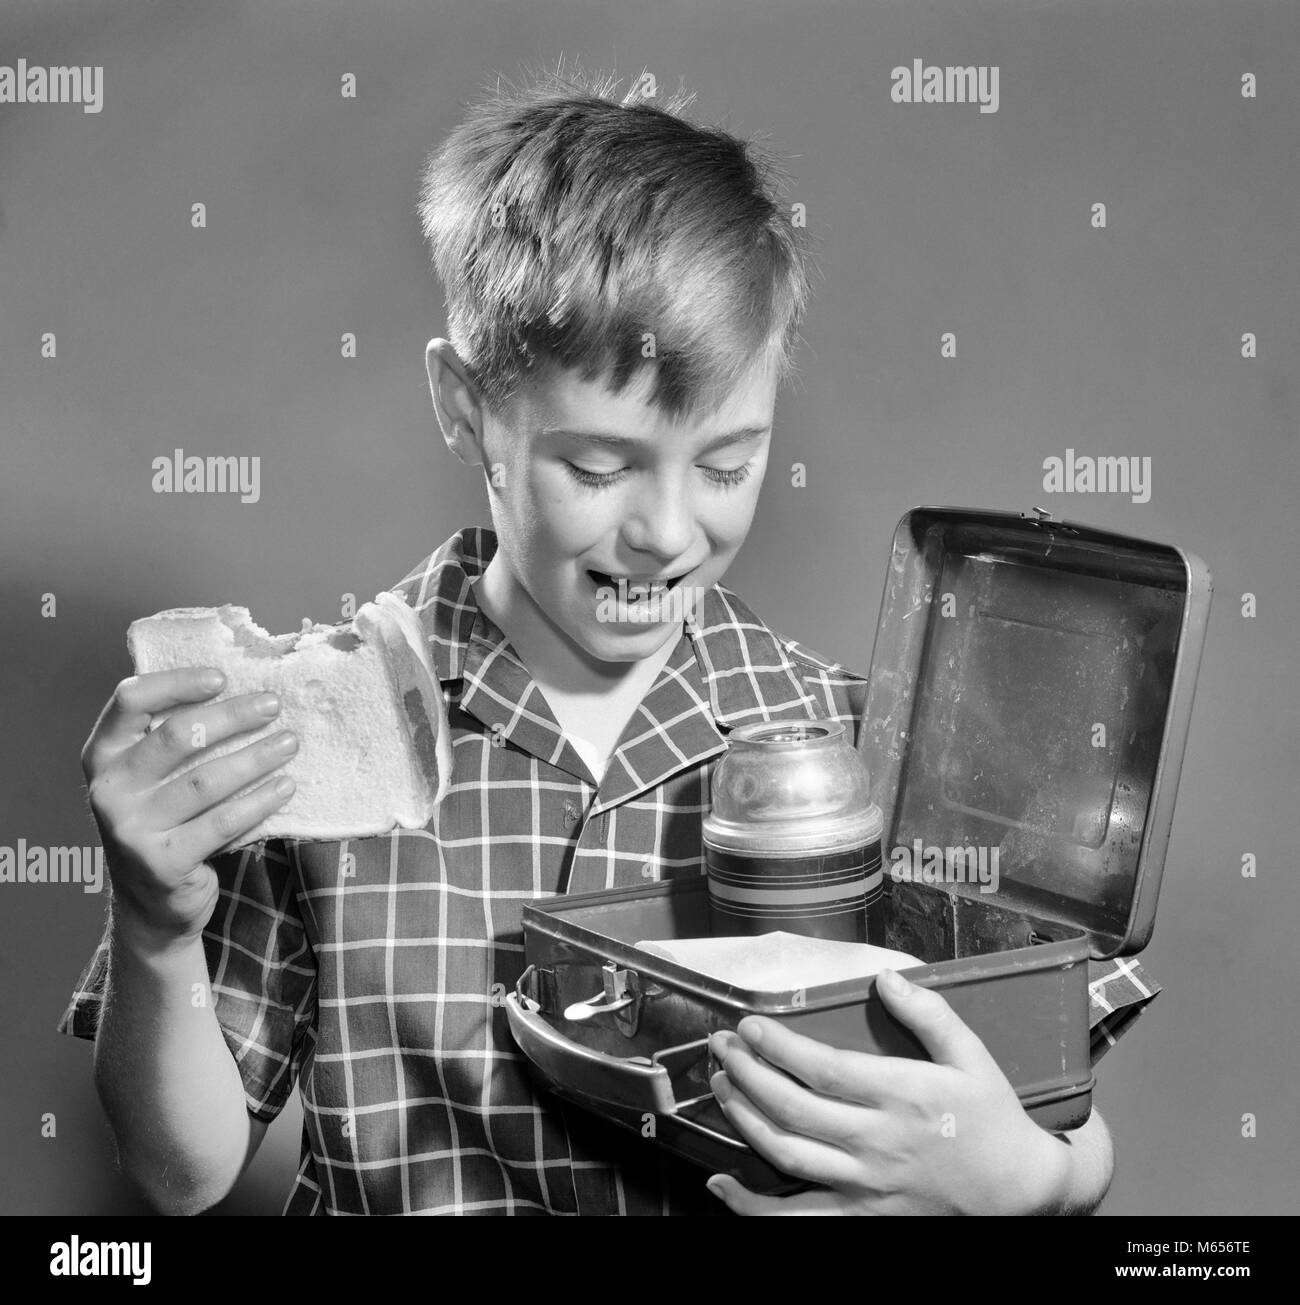 1950s SMILING BOY EATING SANDWICH LOOKING INTO LUNCH BOX WITH THERMOS - f6553 DEB001 HARS COPY SPACE HALF-LENGTH - Stock Image